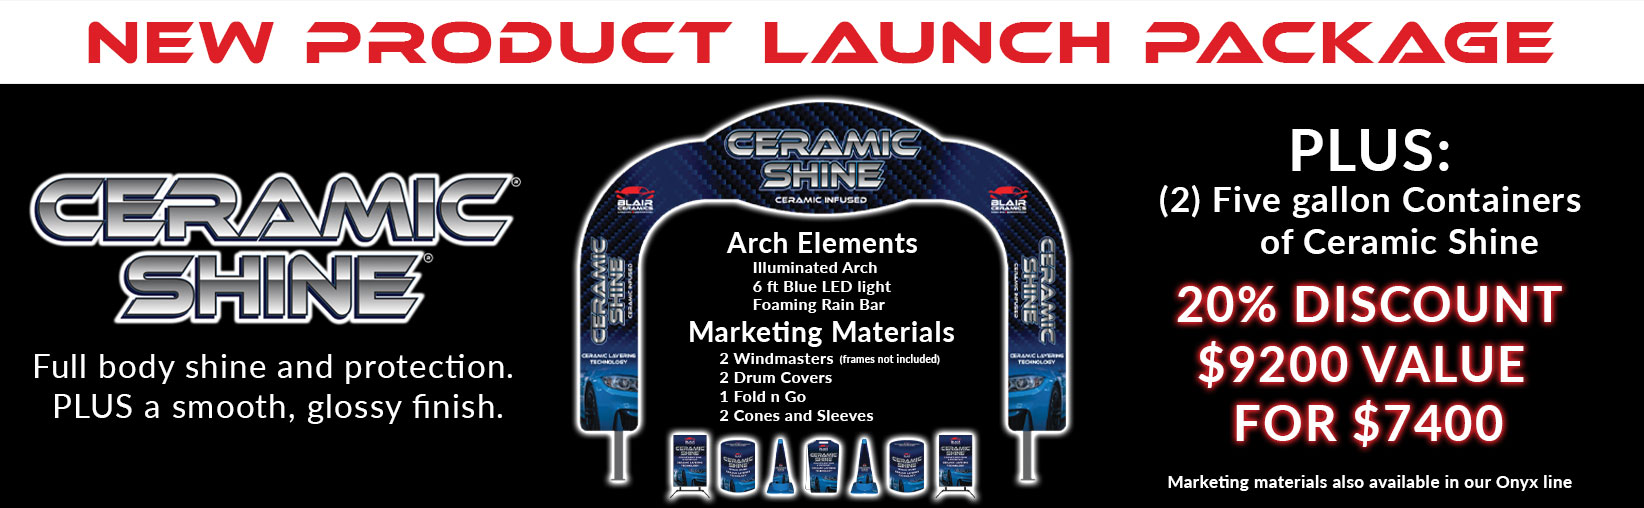 New Product Launch Blair Banner